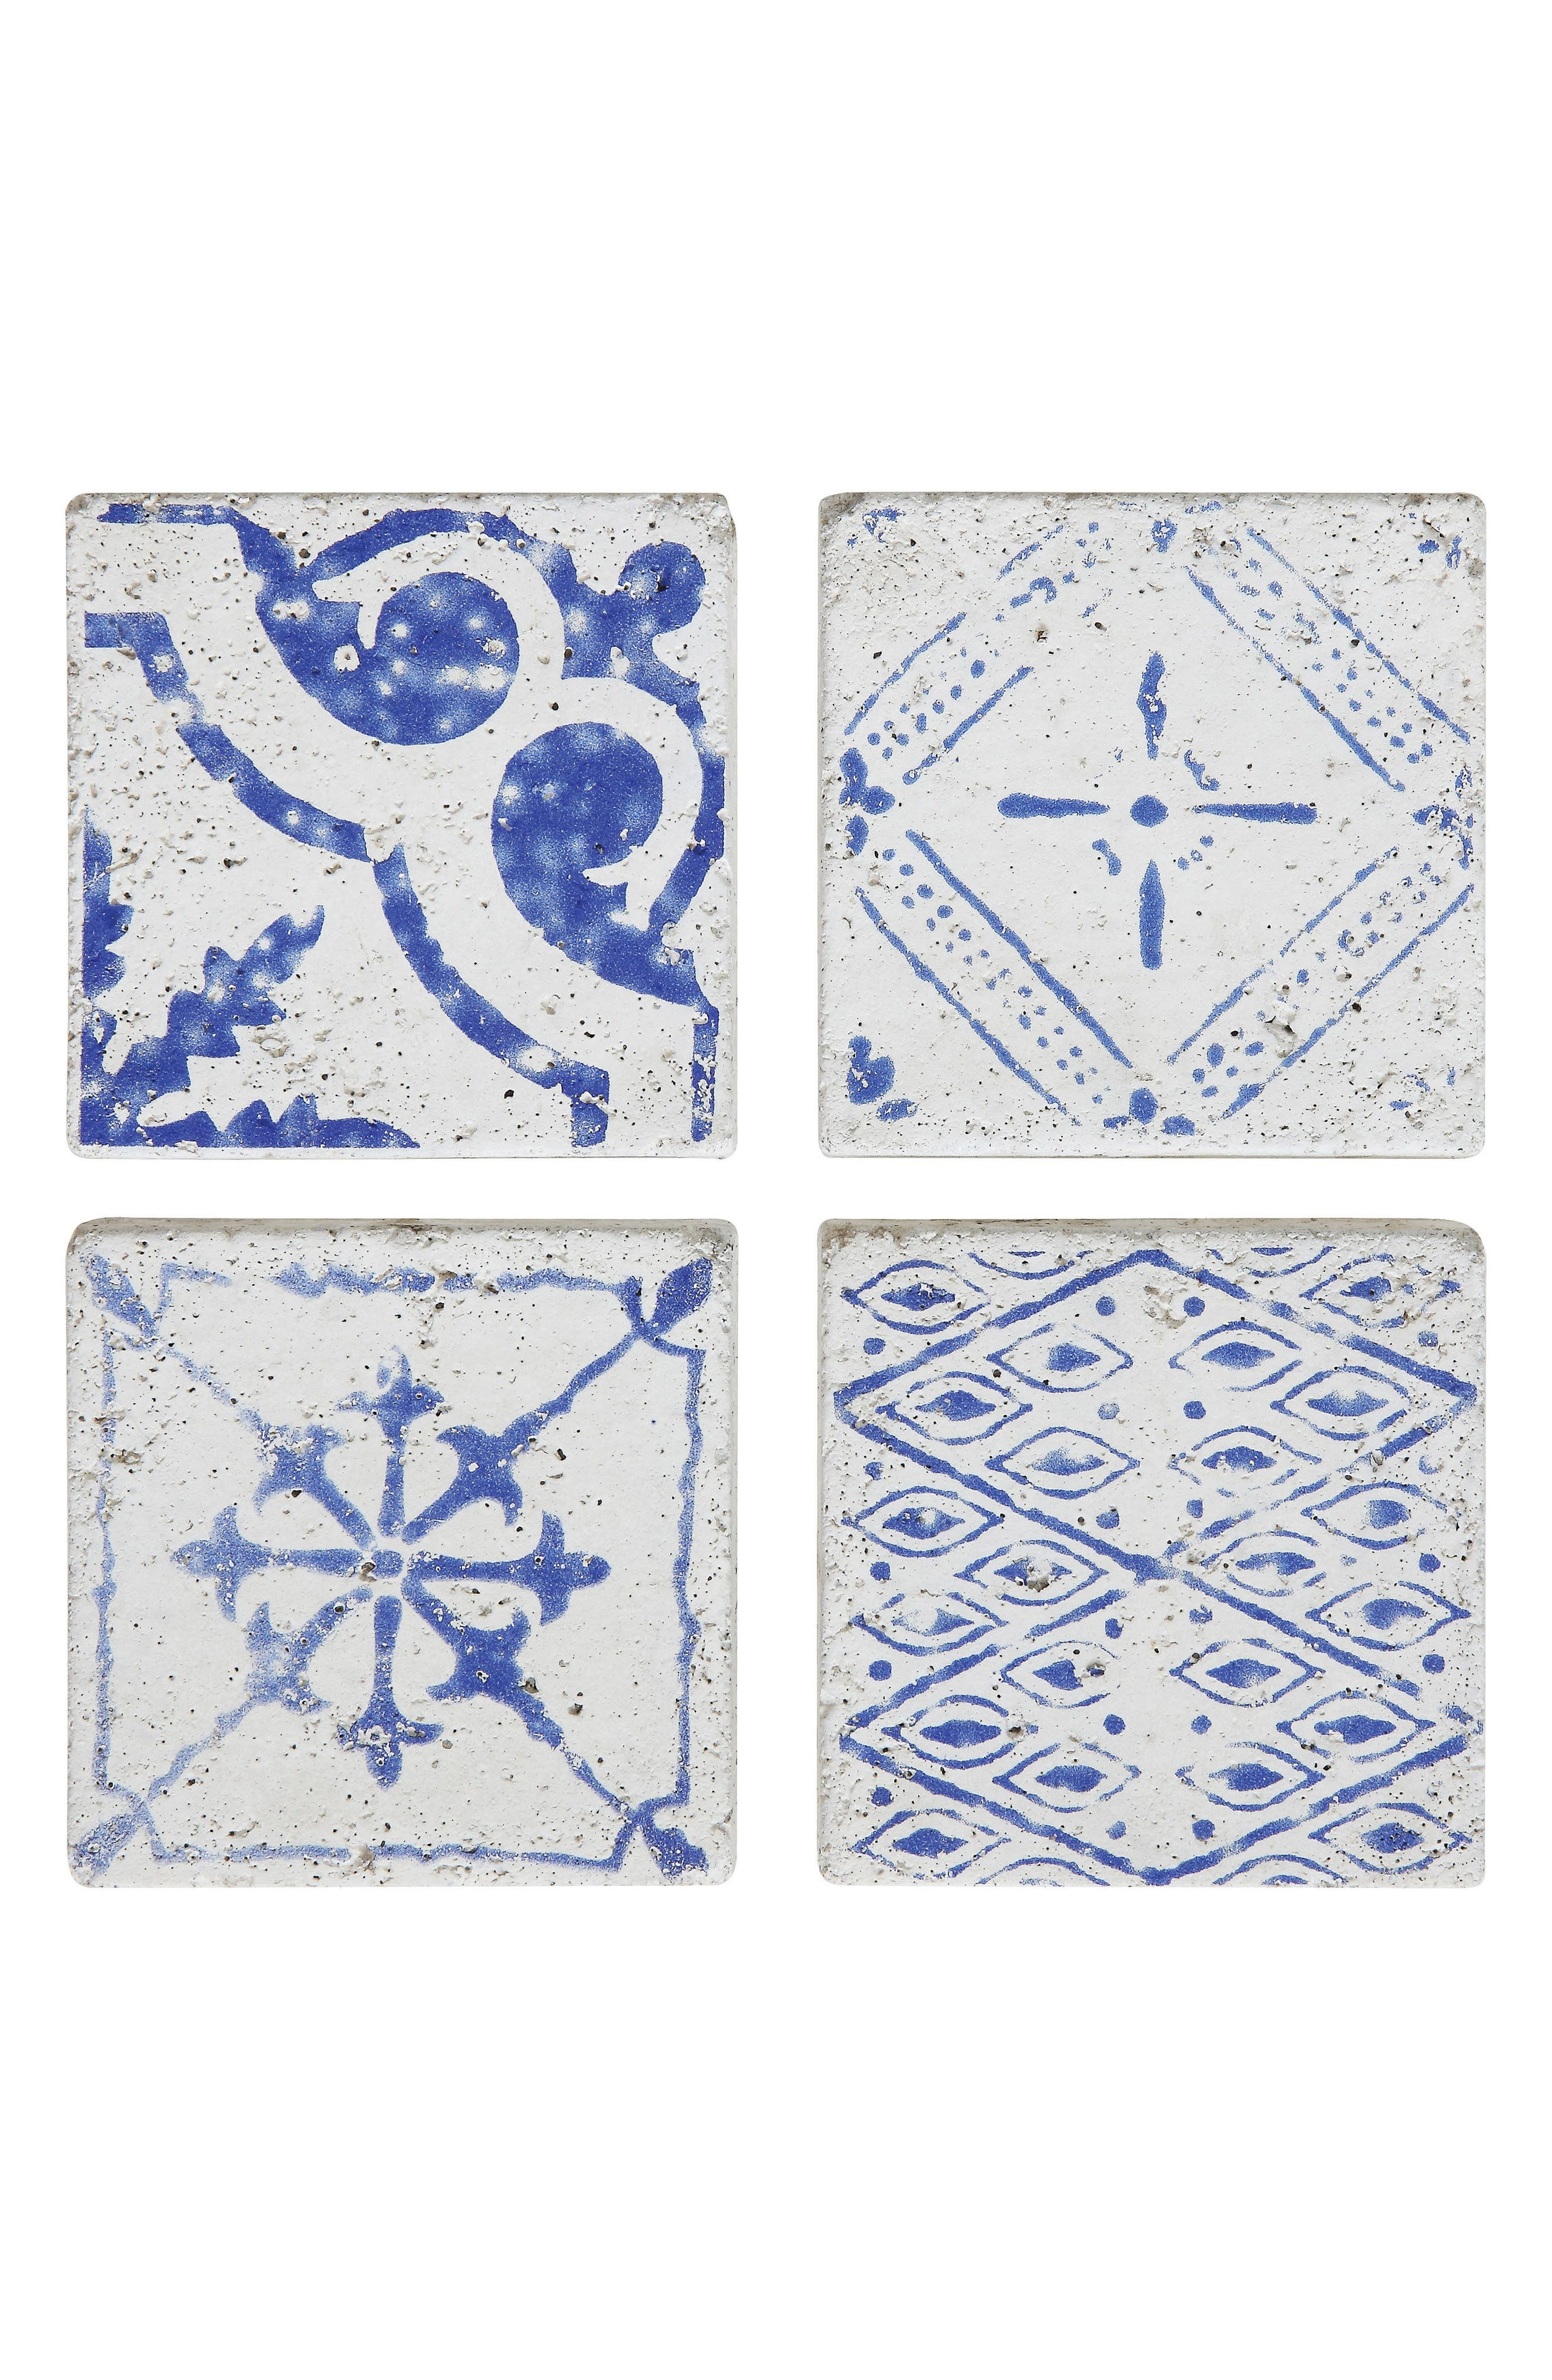 Main Image - Creative Co-Op Set of 4 Cement Tile Coasters